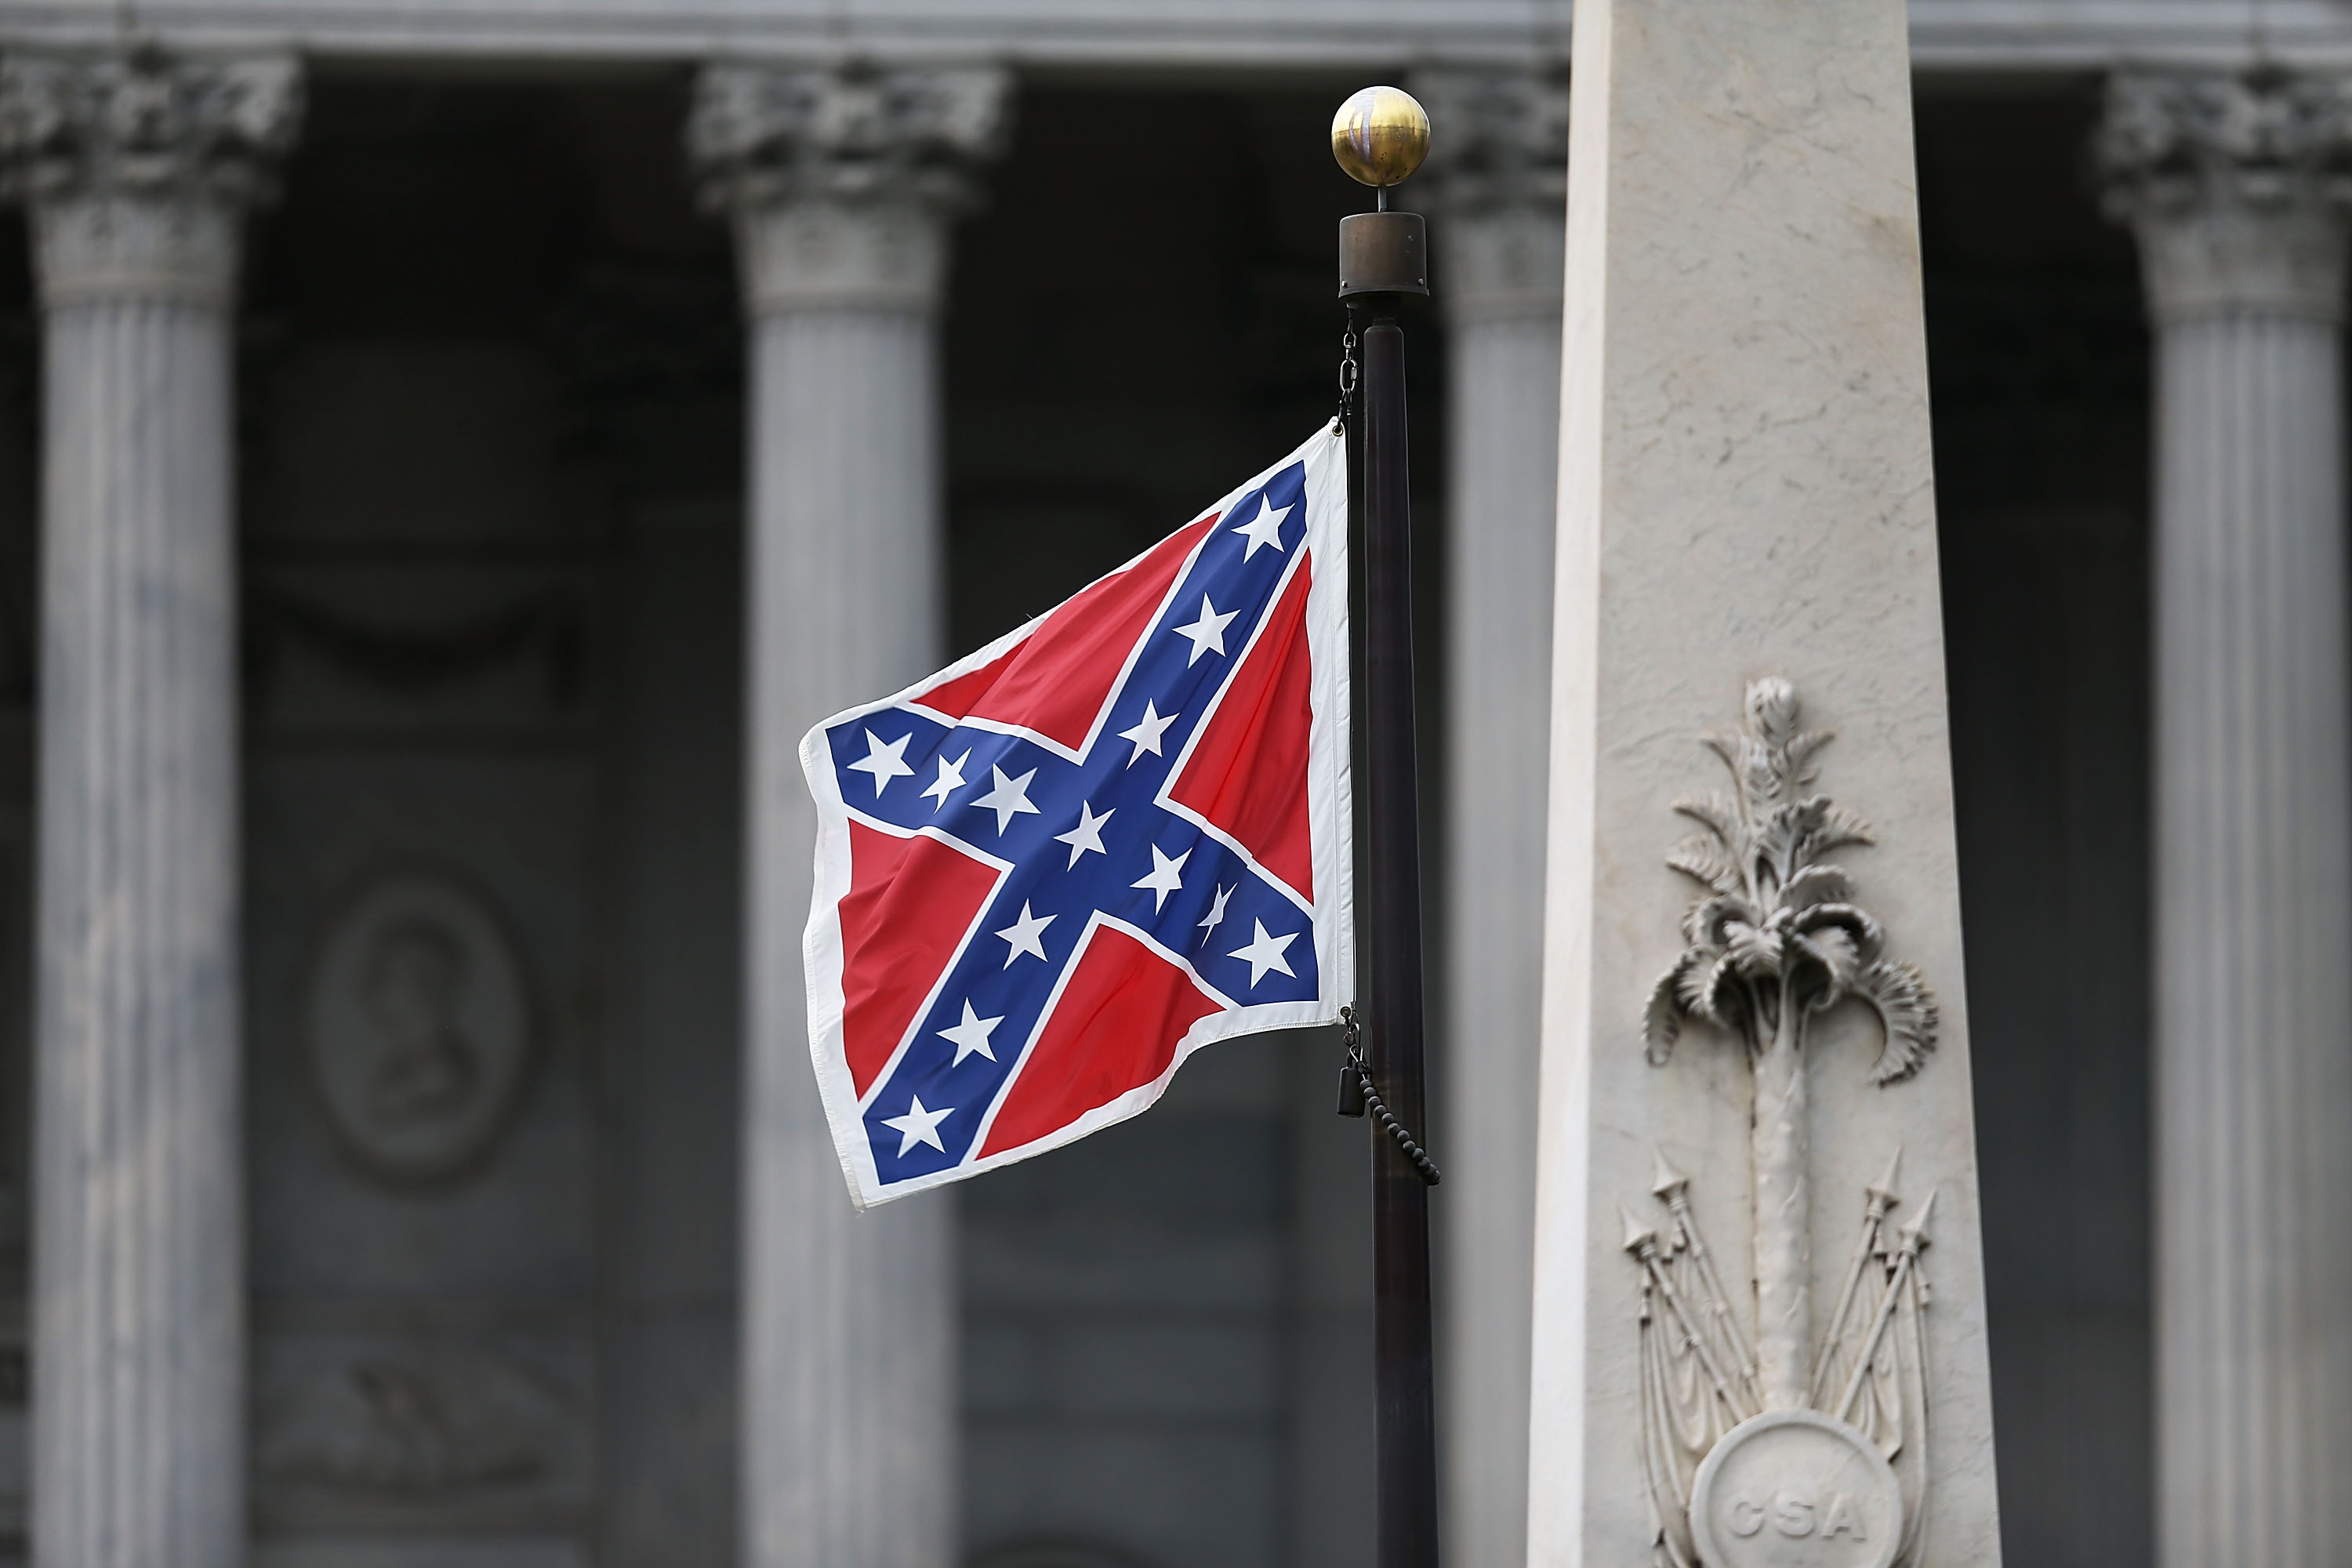 The Confederate flag flies on the Capitol grounds after South Carolina Gov. Nikki Haley announced that she will call for the Confederate flag to be removed in Columbia, S.C., on June 22, 2015.